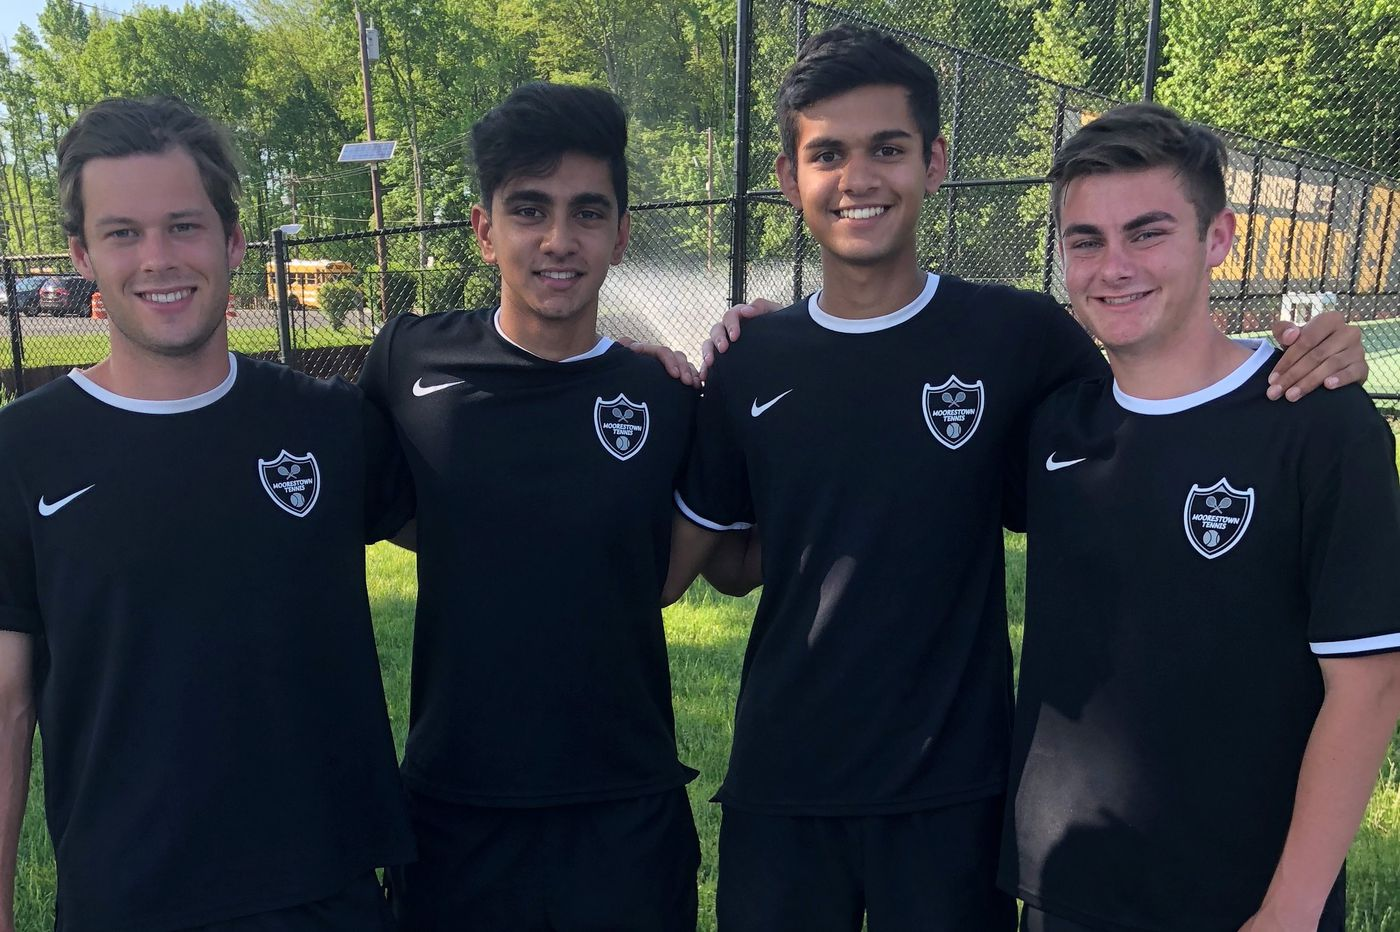 Moorestown seniors combine for more than 400 tennis wins